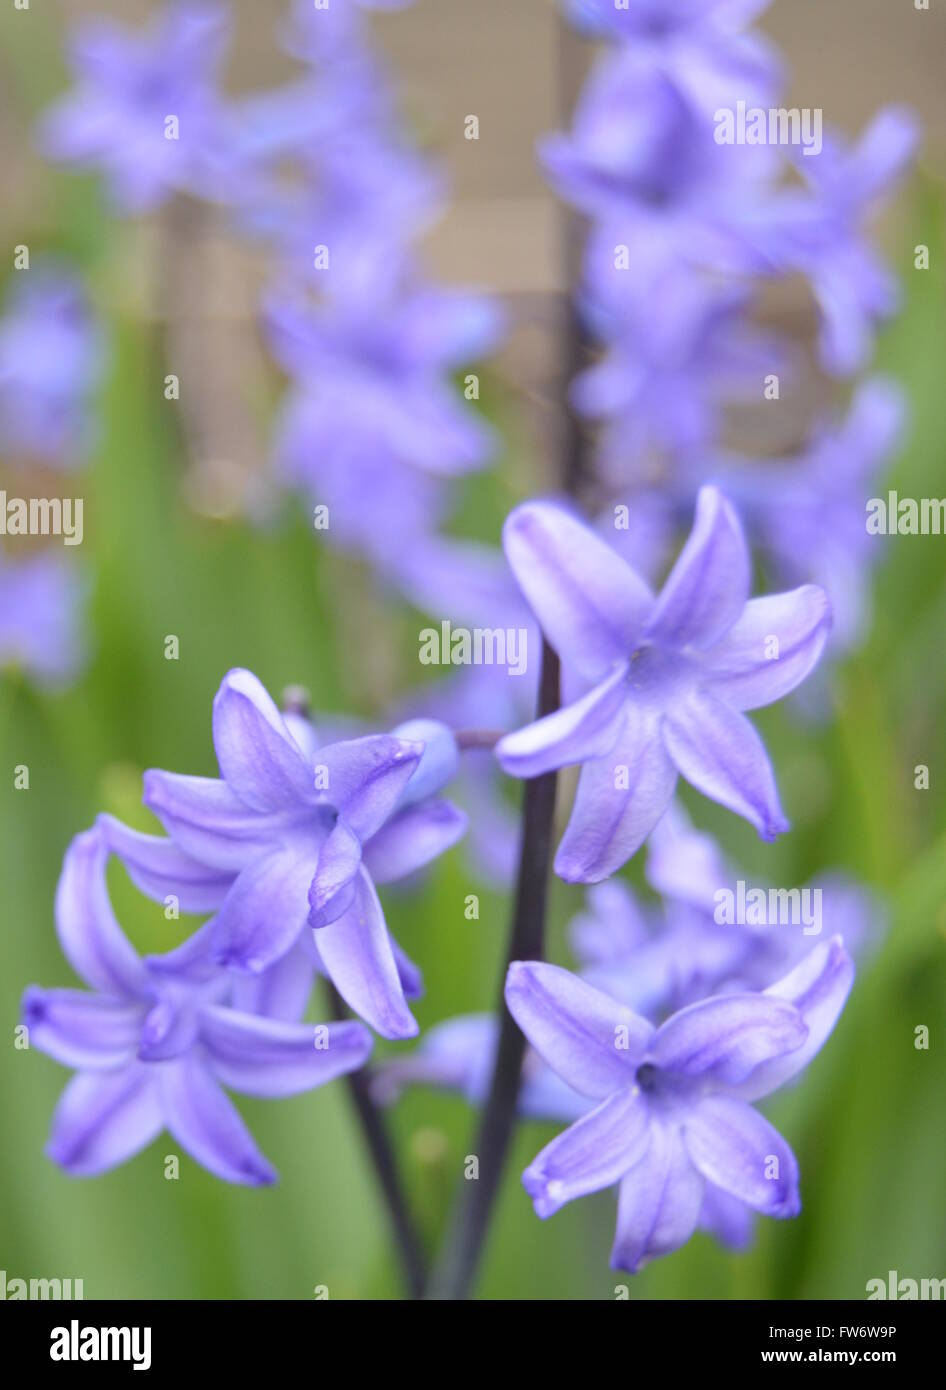 hyacinths-with-a-brown-background-FW6W9P